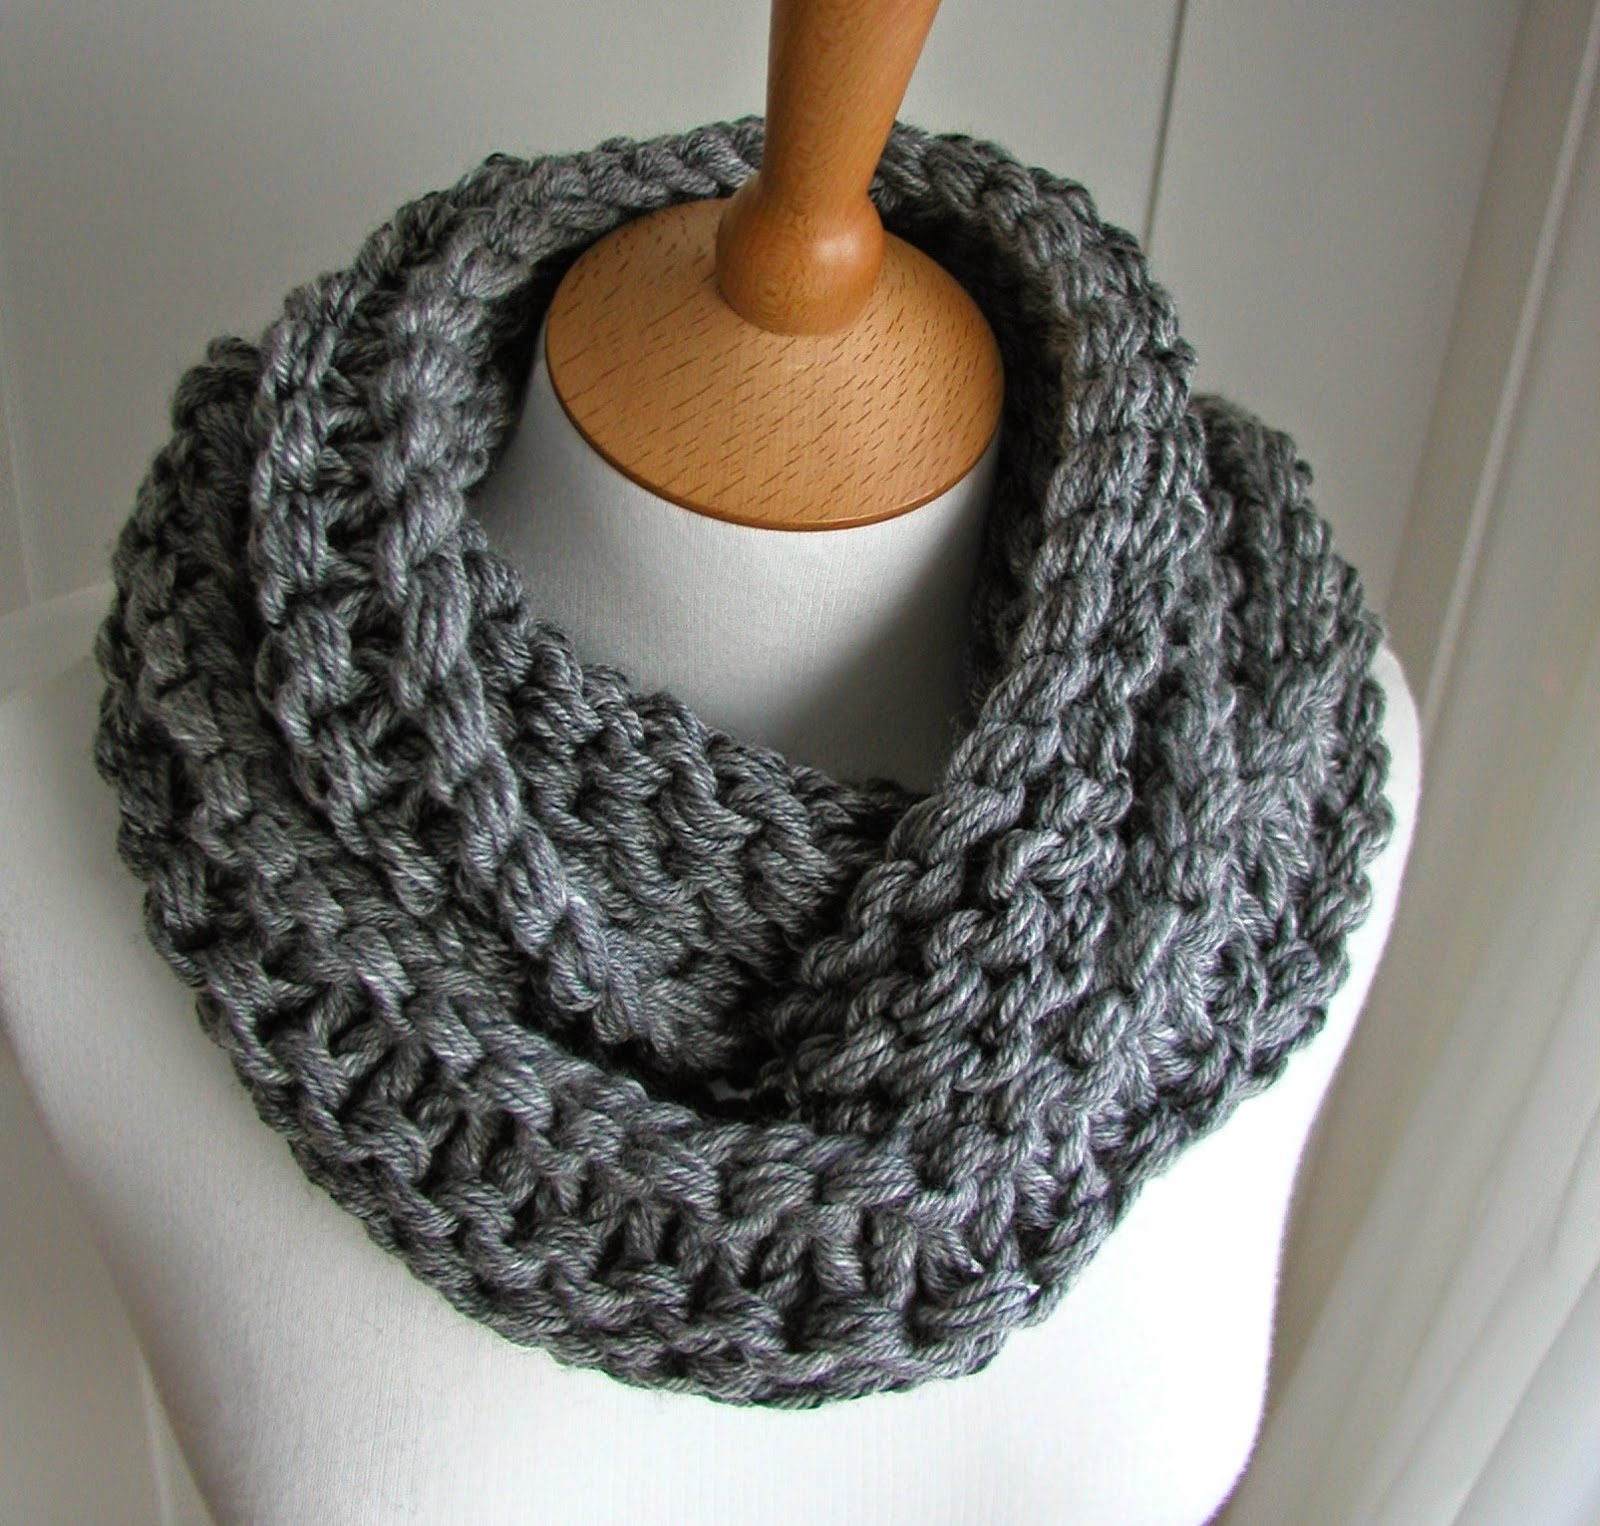 Knitting Pattern For Scarf In The Round : Hand Knitted Things: Circular Scarf Free Pattern